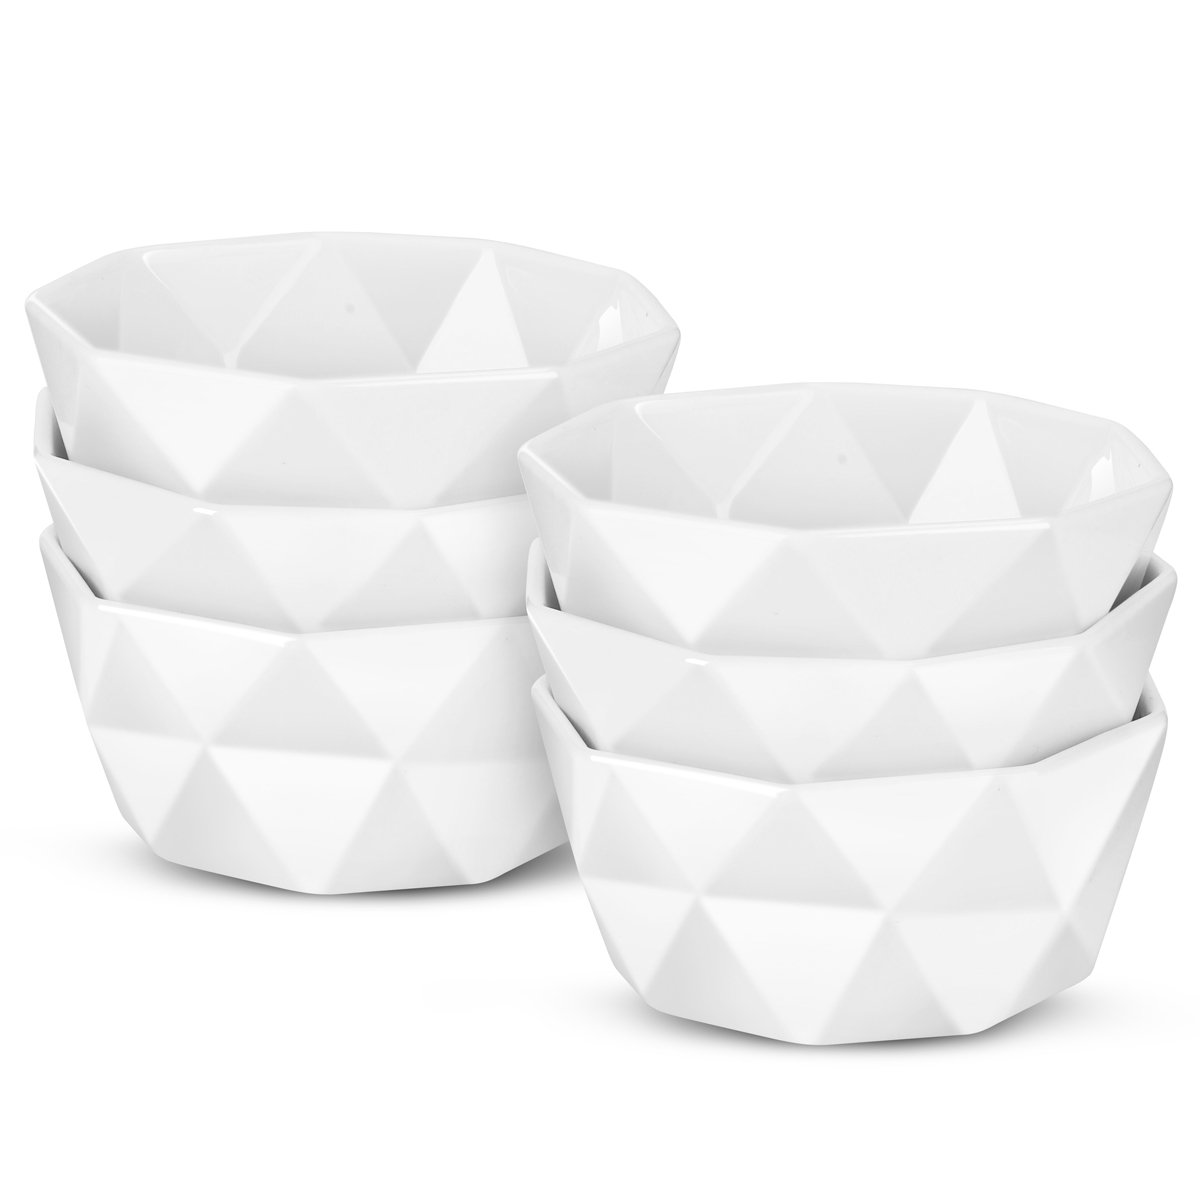 Dessert Bowls Ceramic Bowl Set